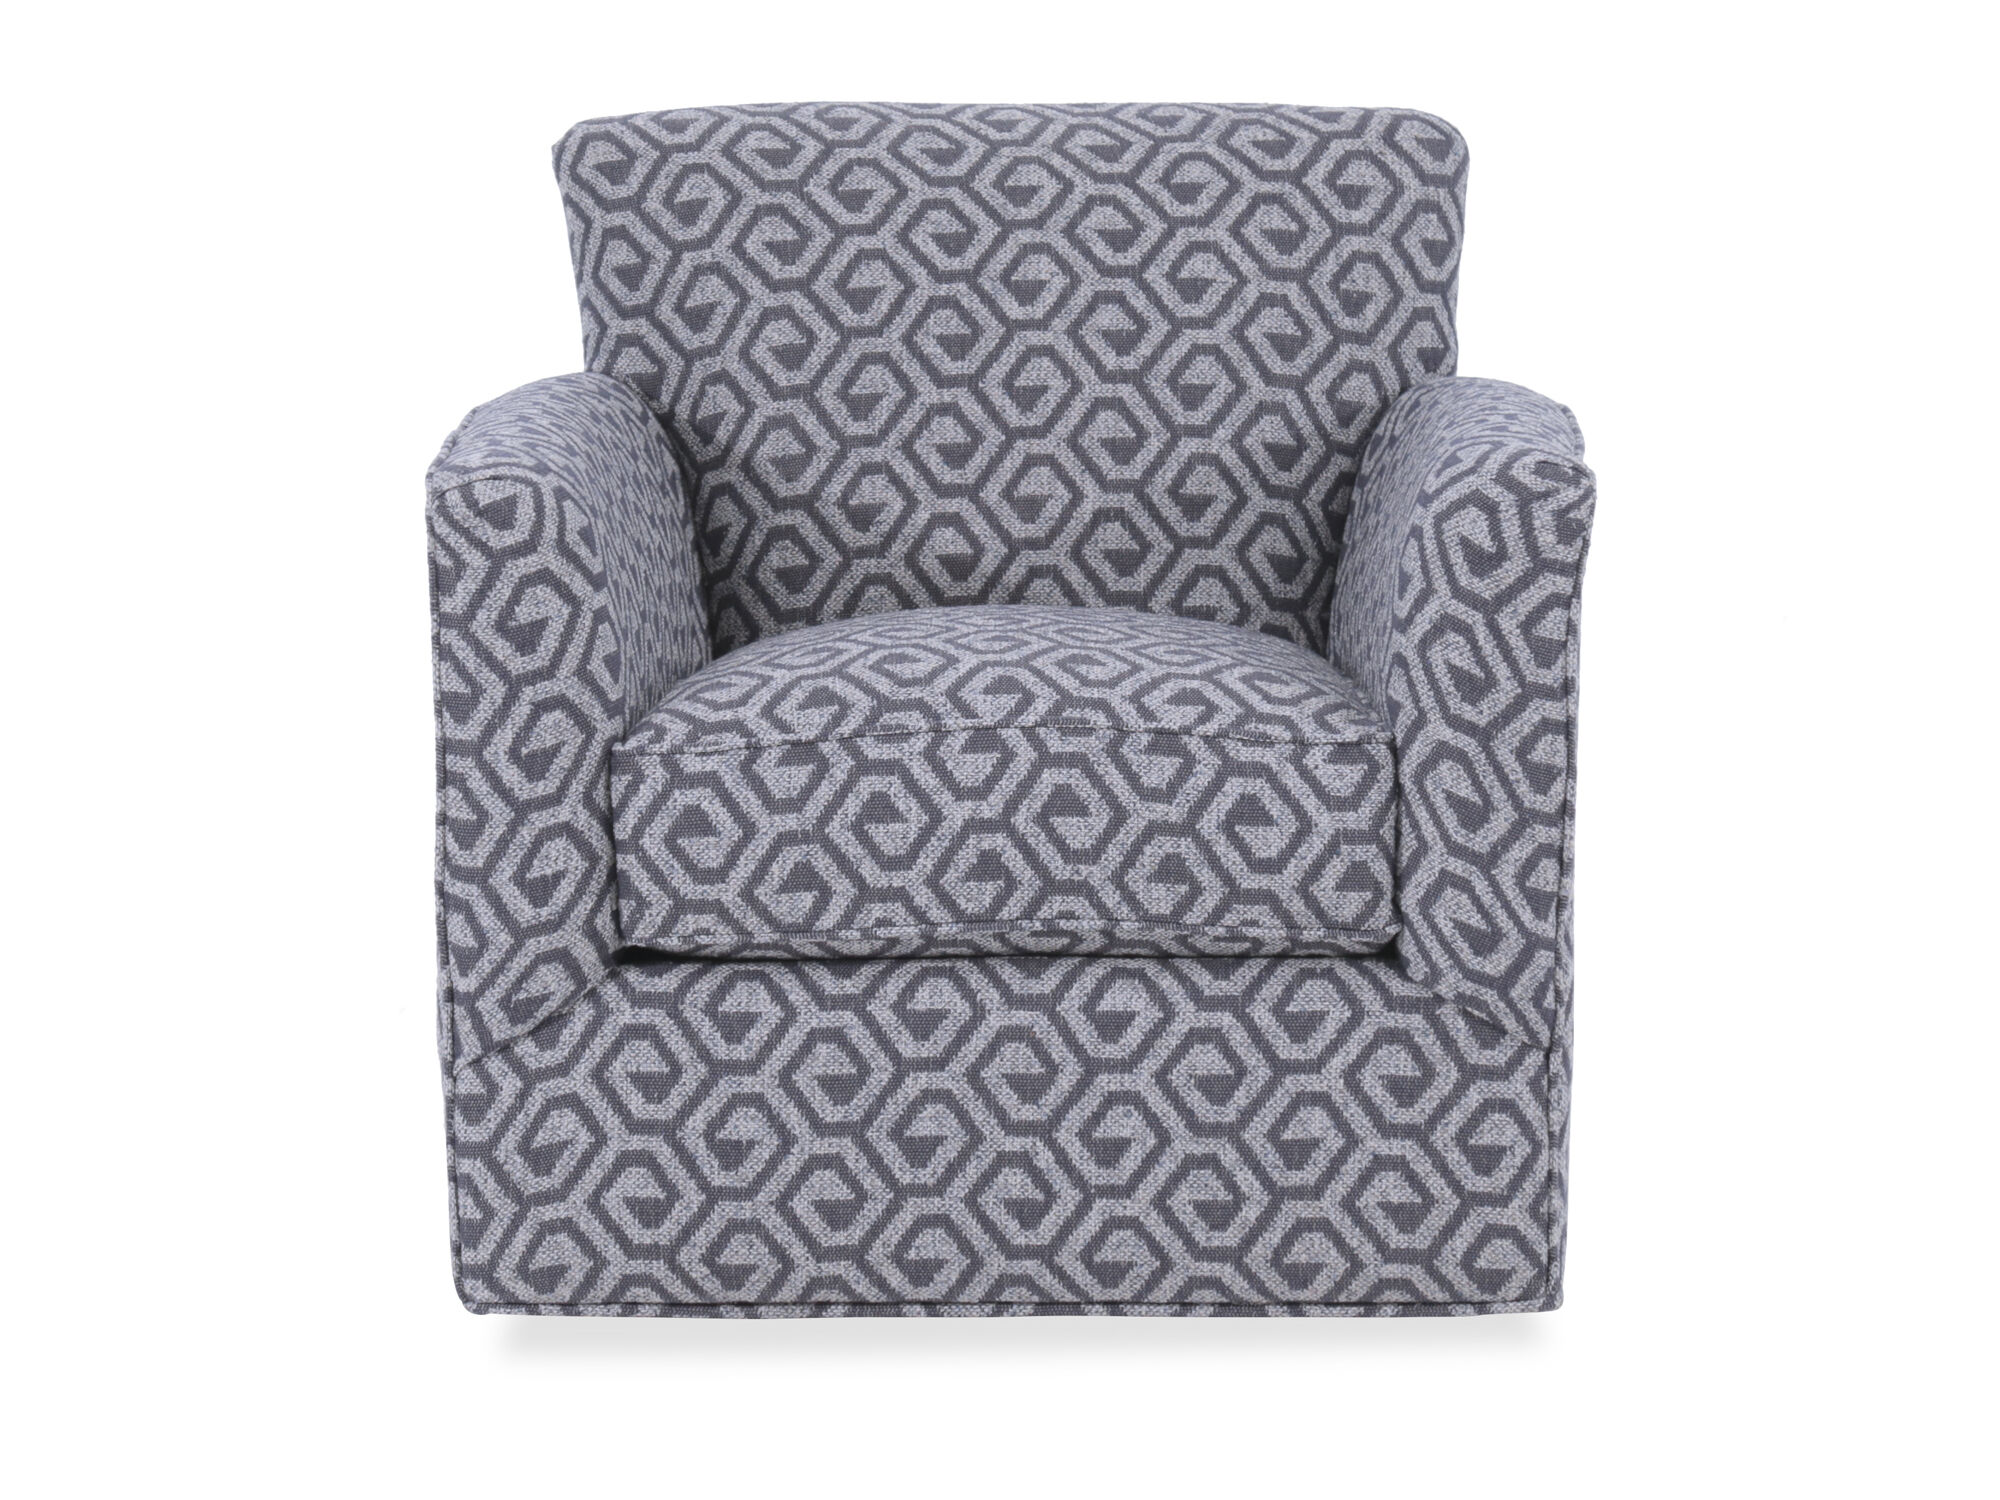 ... Gray Video; Geometric Patterned Contemporary 34u0026quot; Swivel Chair ...